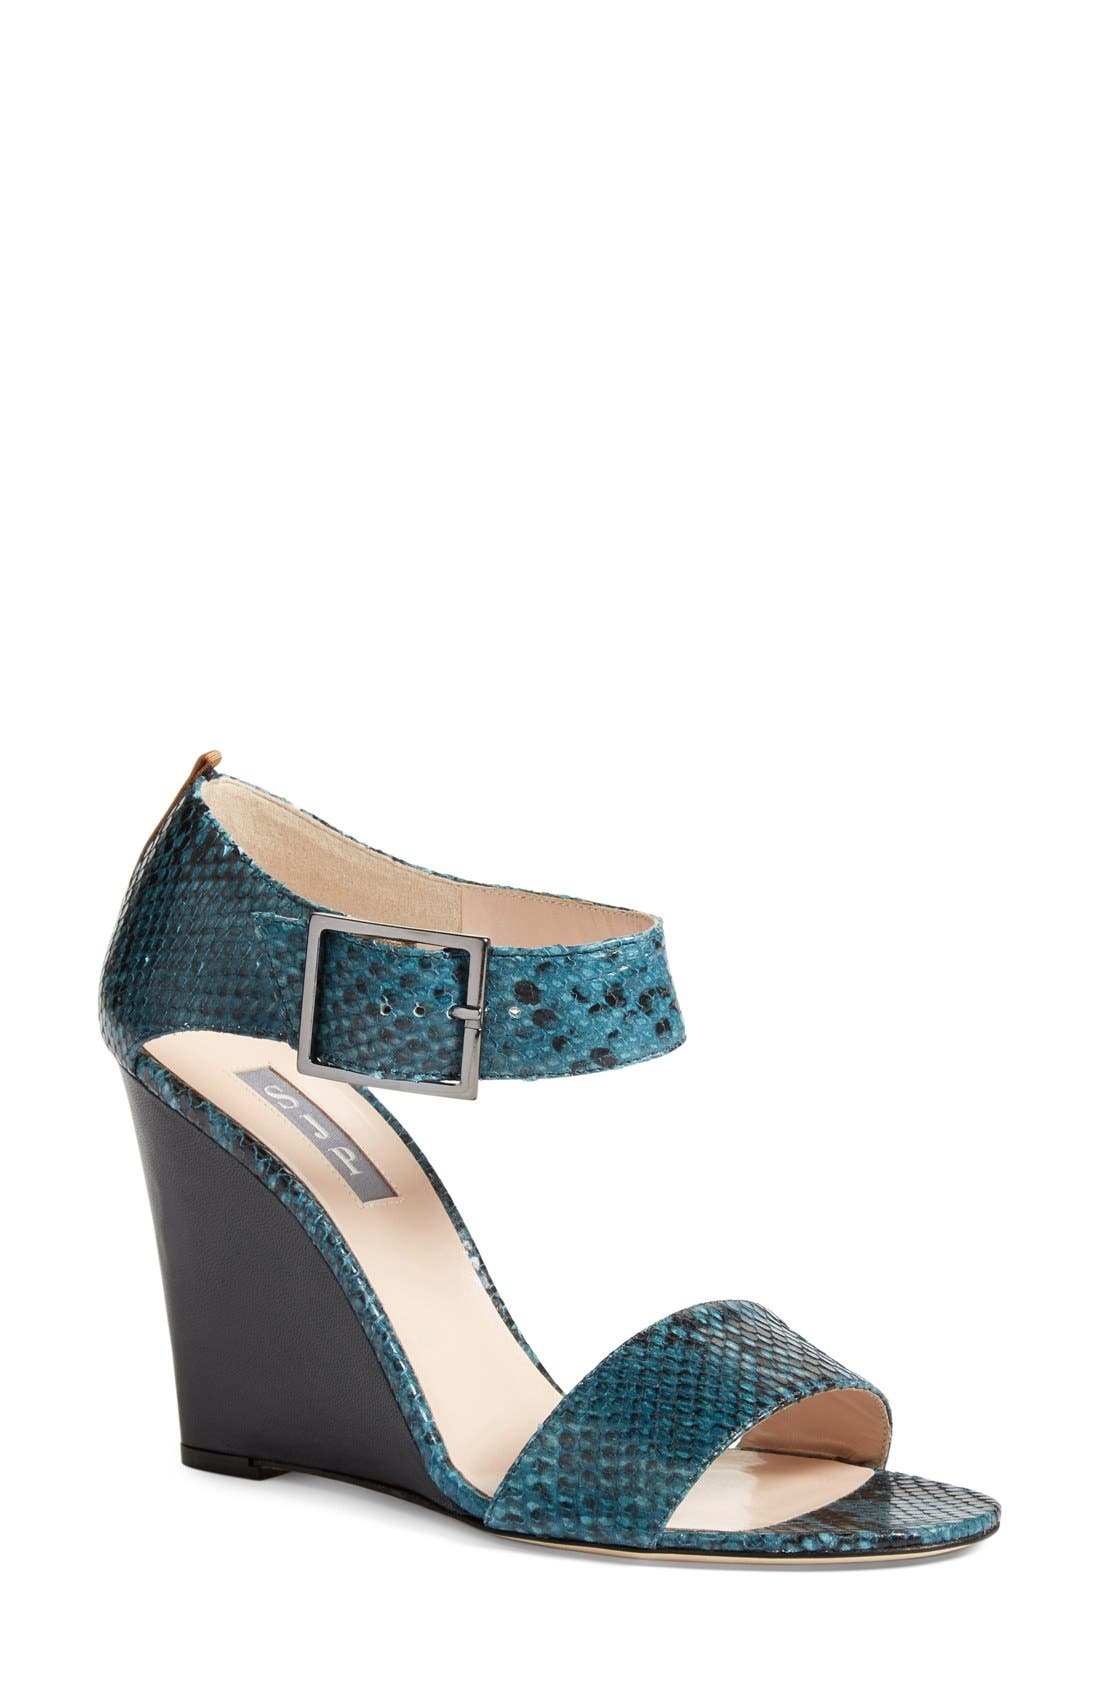 Main Image - SJP by Sarah Jessica Parker 'Tate' Wedge Sandal (Women)